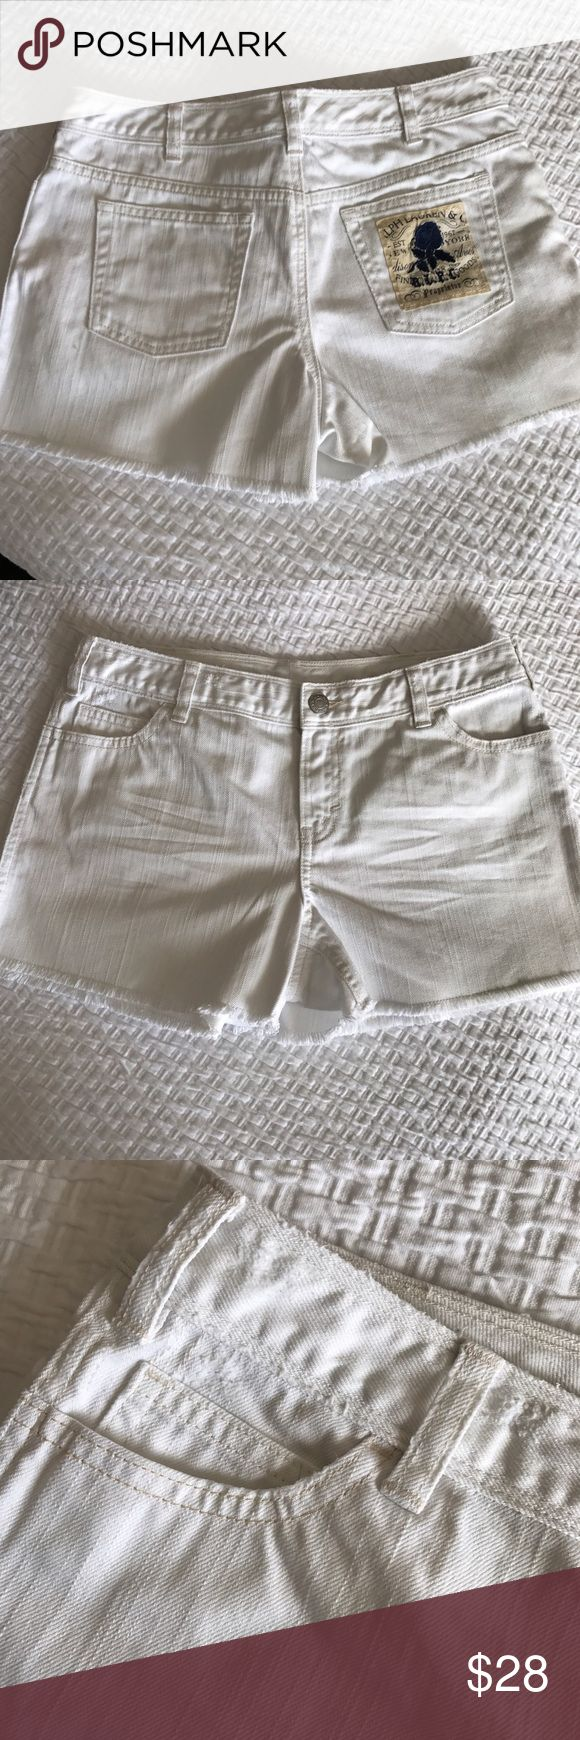 Ralph Lauren White denim Shorts. Ralph Lauren Distressed white denim Shorts. Made for Polo Ralph Lauren in Europe. Size 16 but please take a look at the photos with measurements. 100% Cotton. Great condition. Clean, no rips, no stains❌no trades❗️ Ralph Lauren Bottoms Shorts